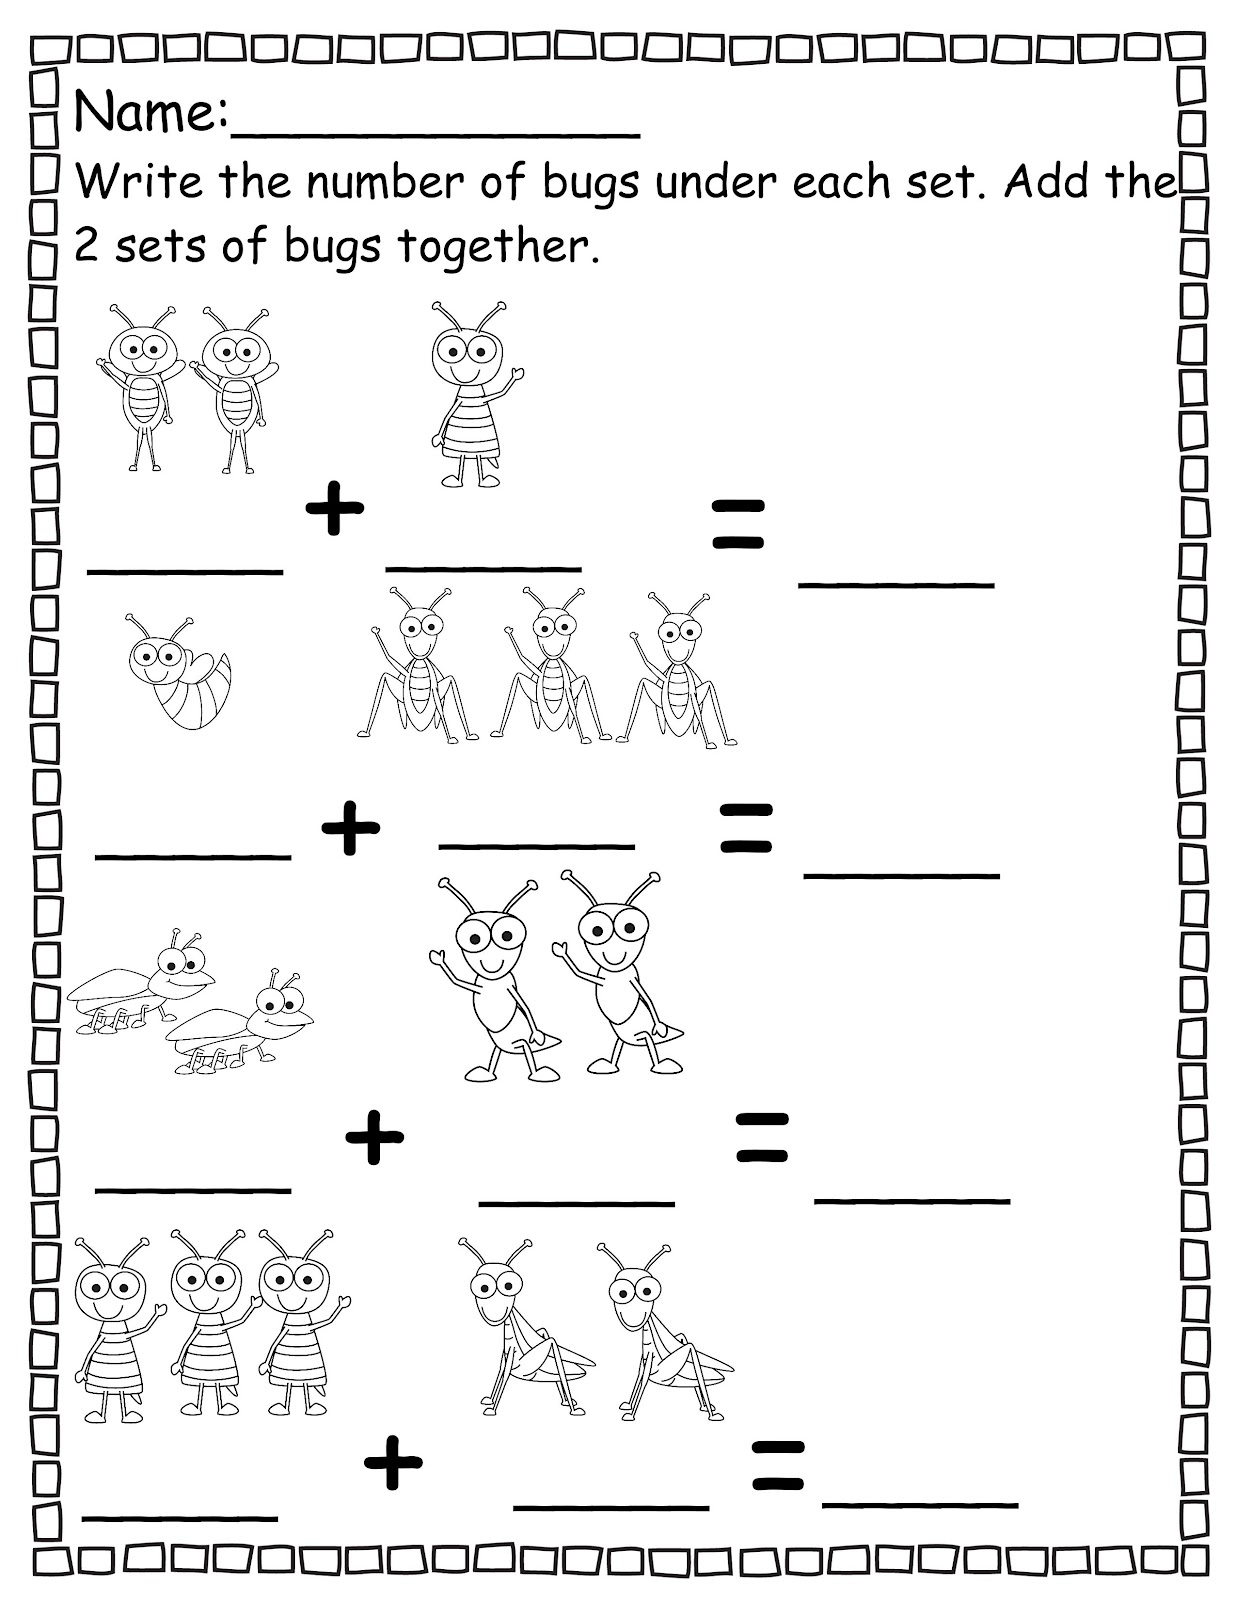 Printable Pre K Math Worksheets Free Worksheets Library – Pre-k Math Worksheets Free